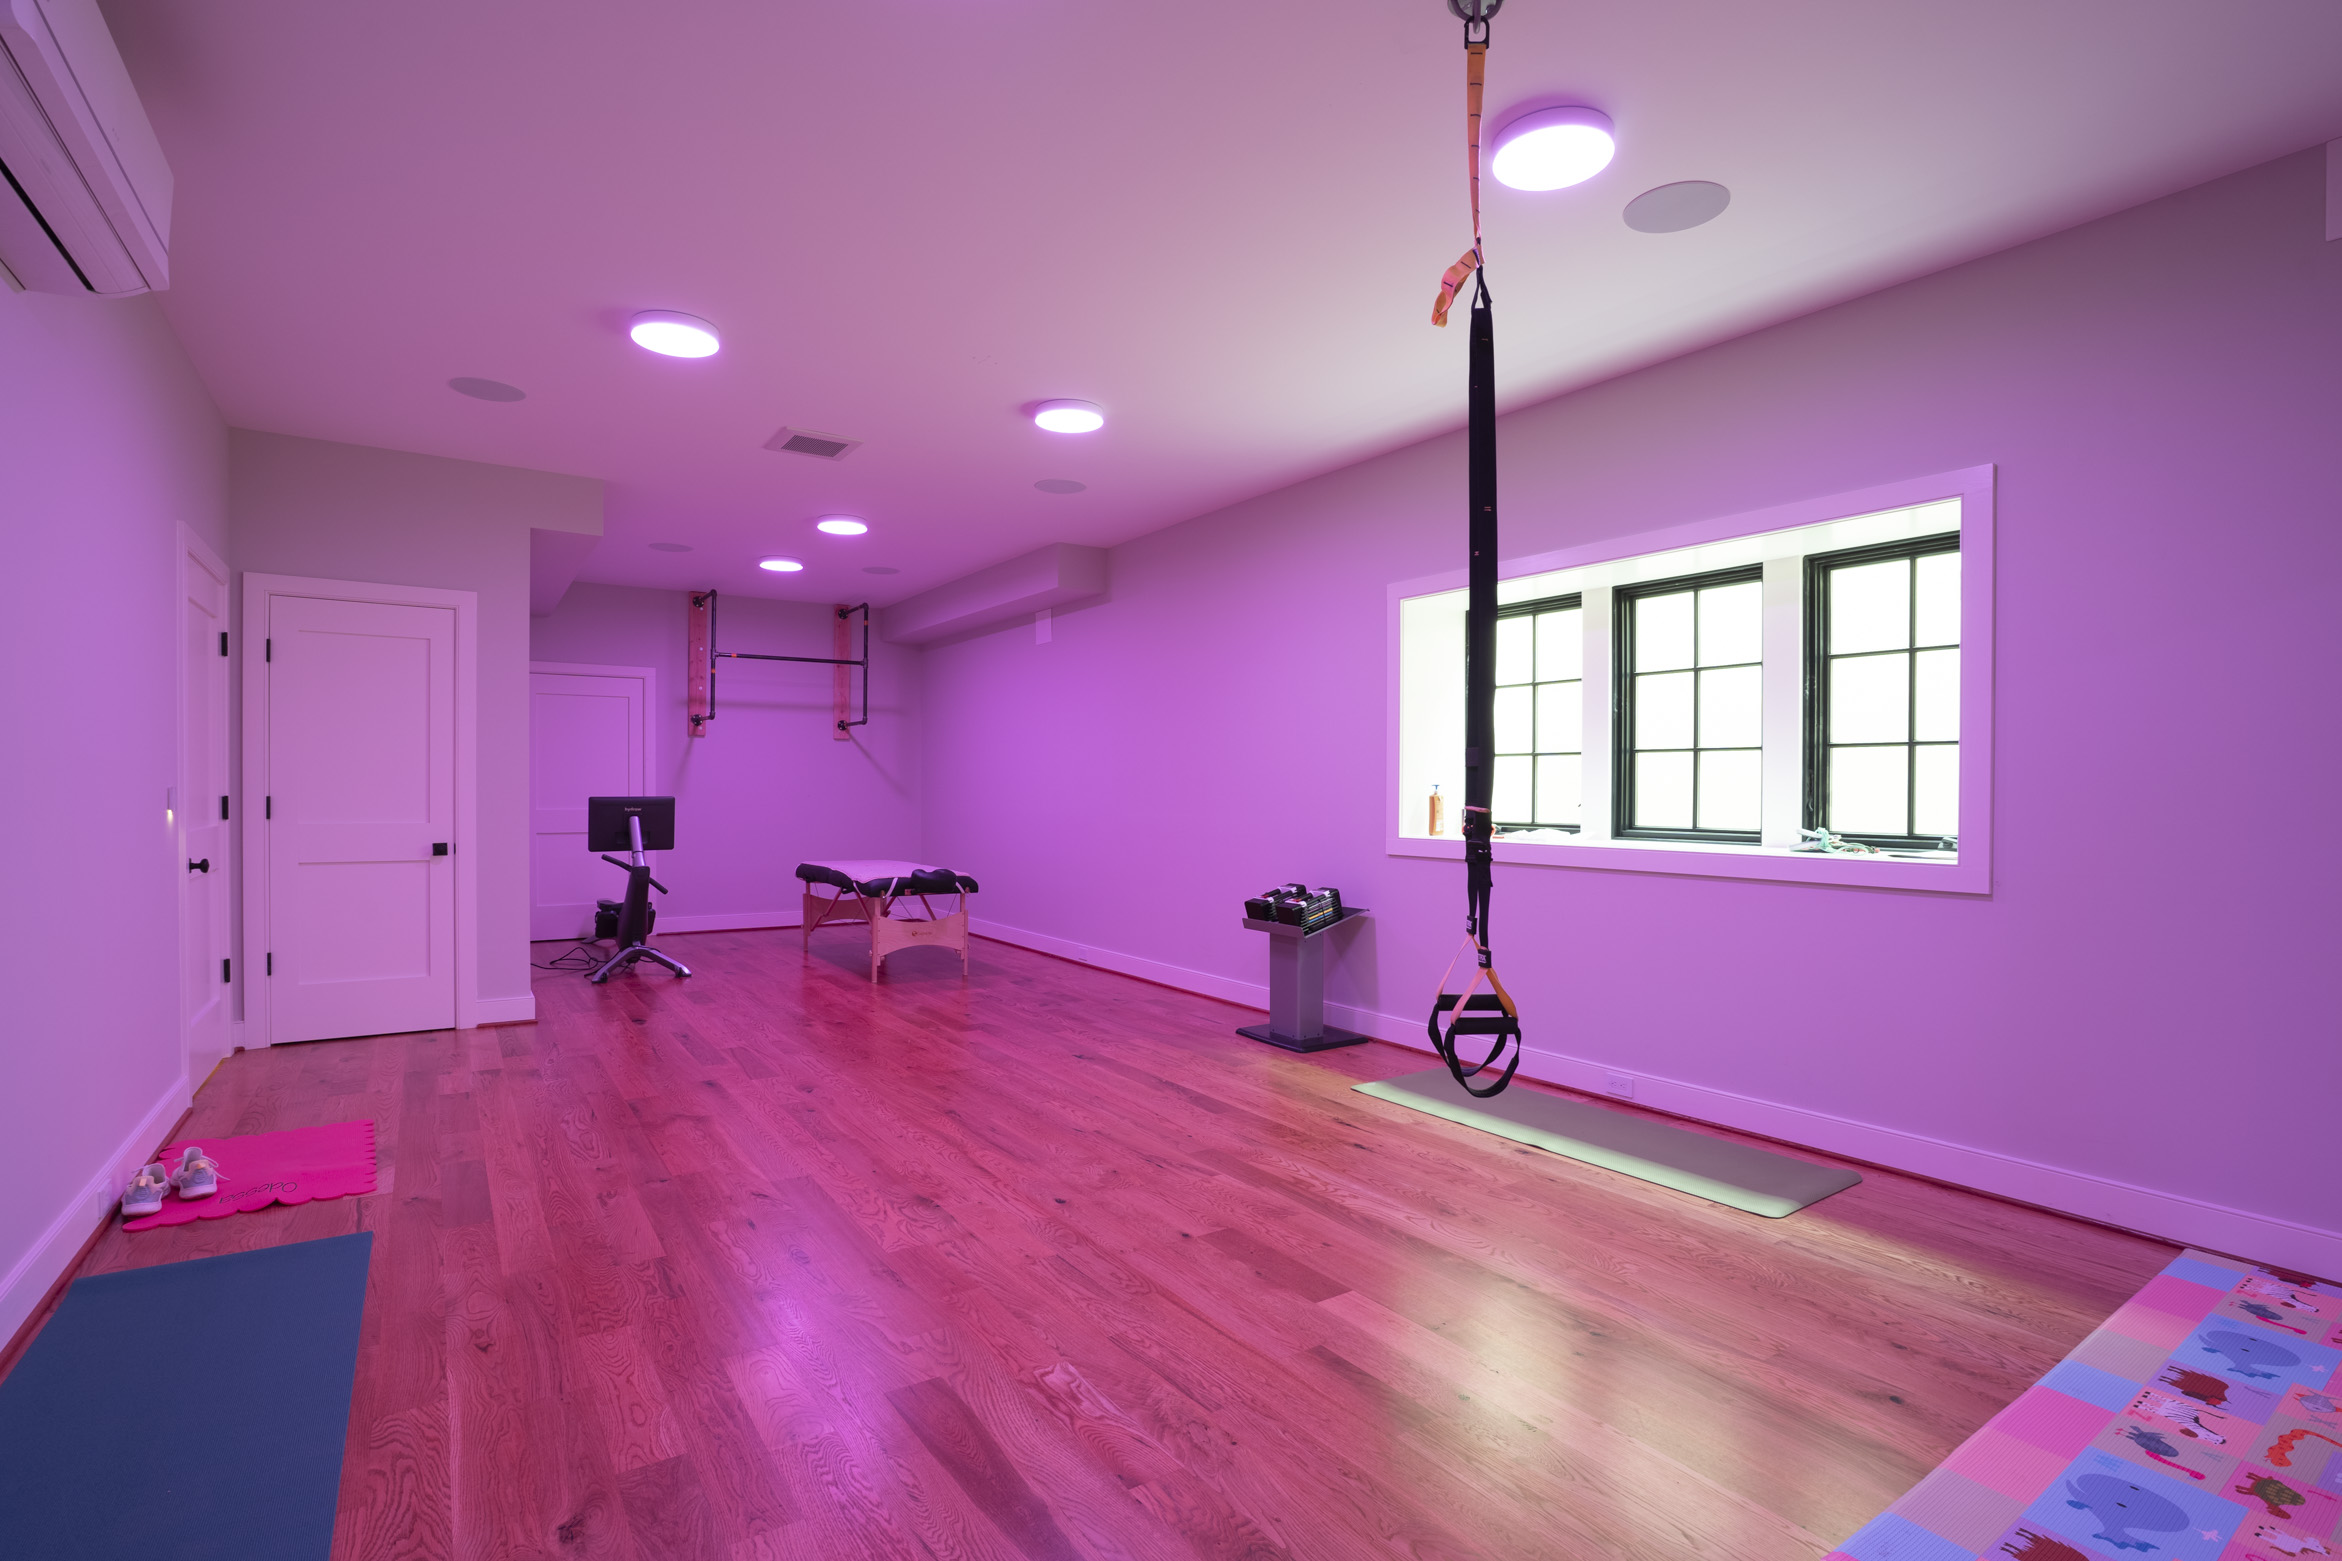 Smart home gym with bright pink lighting